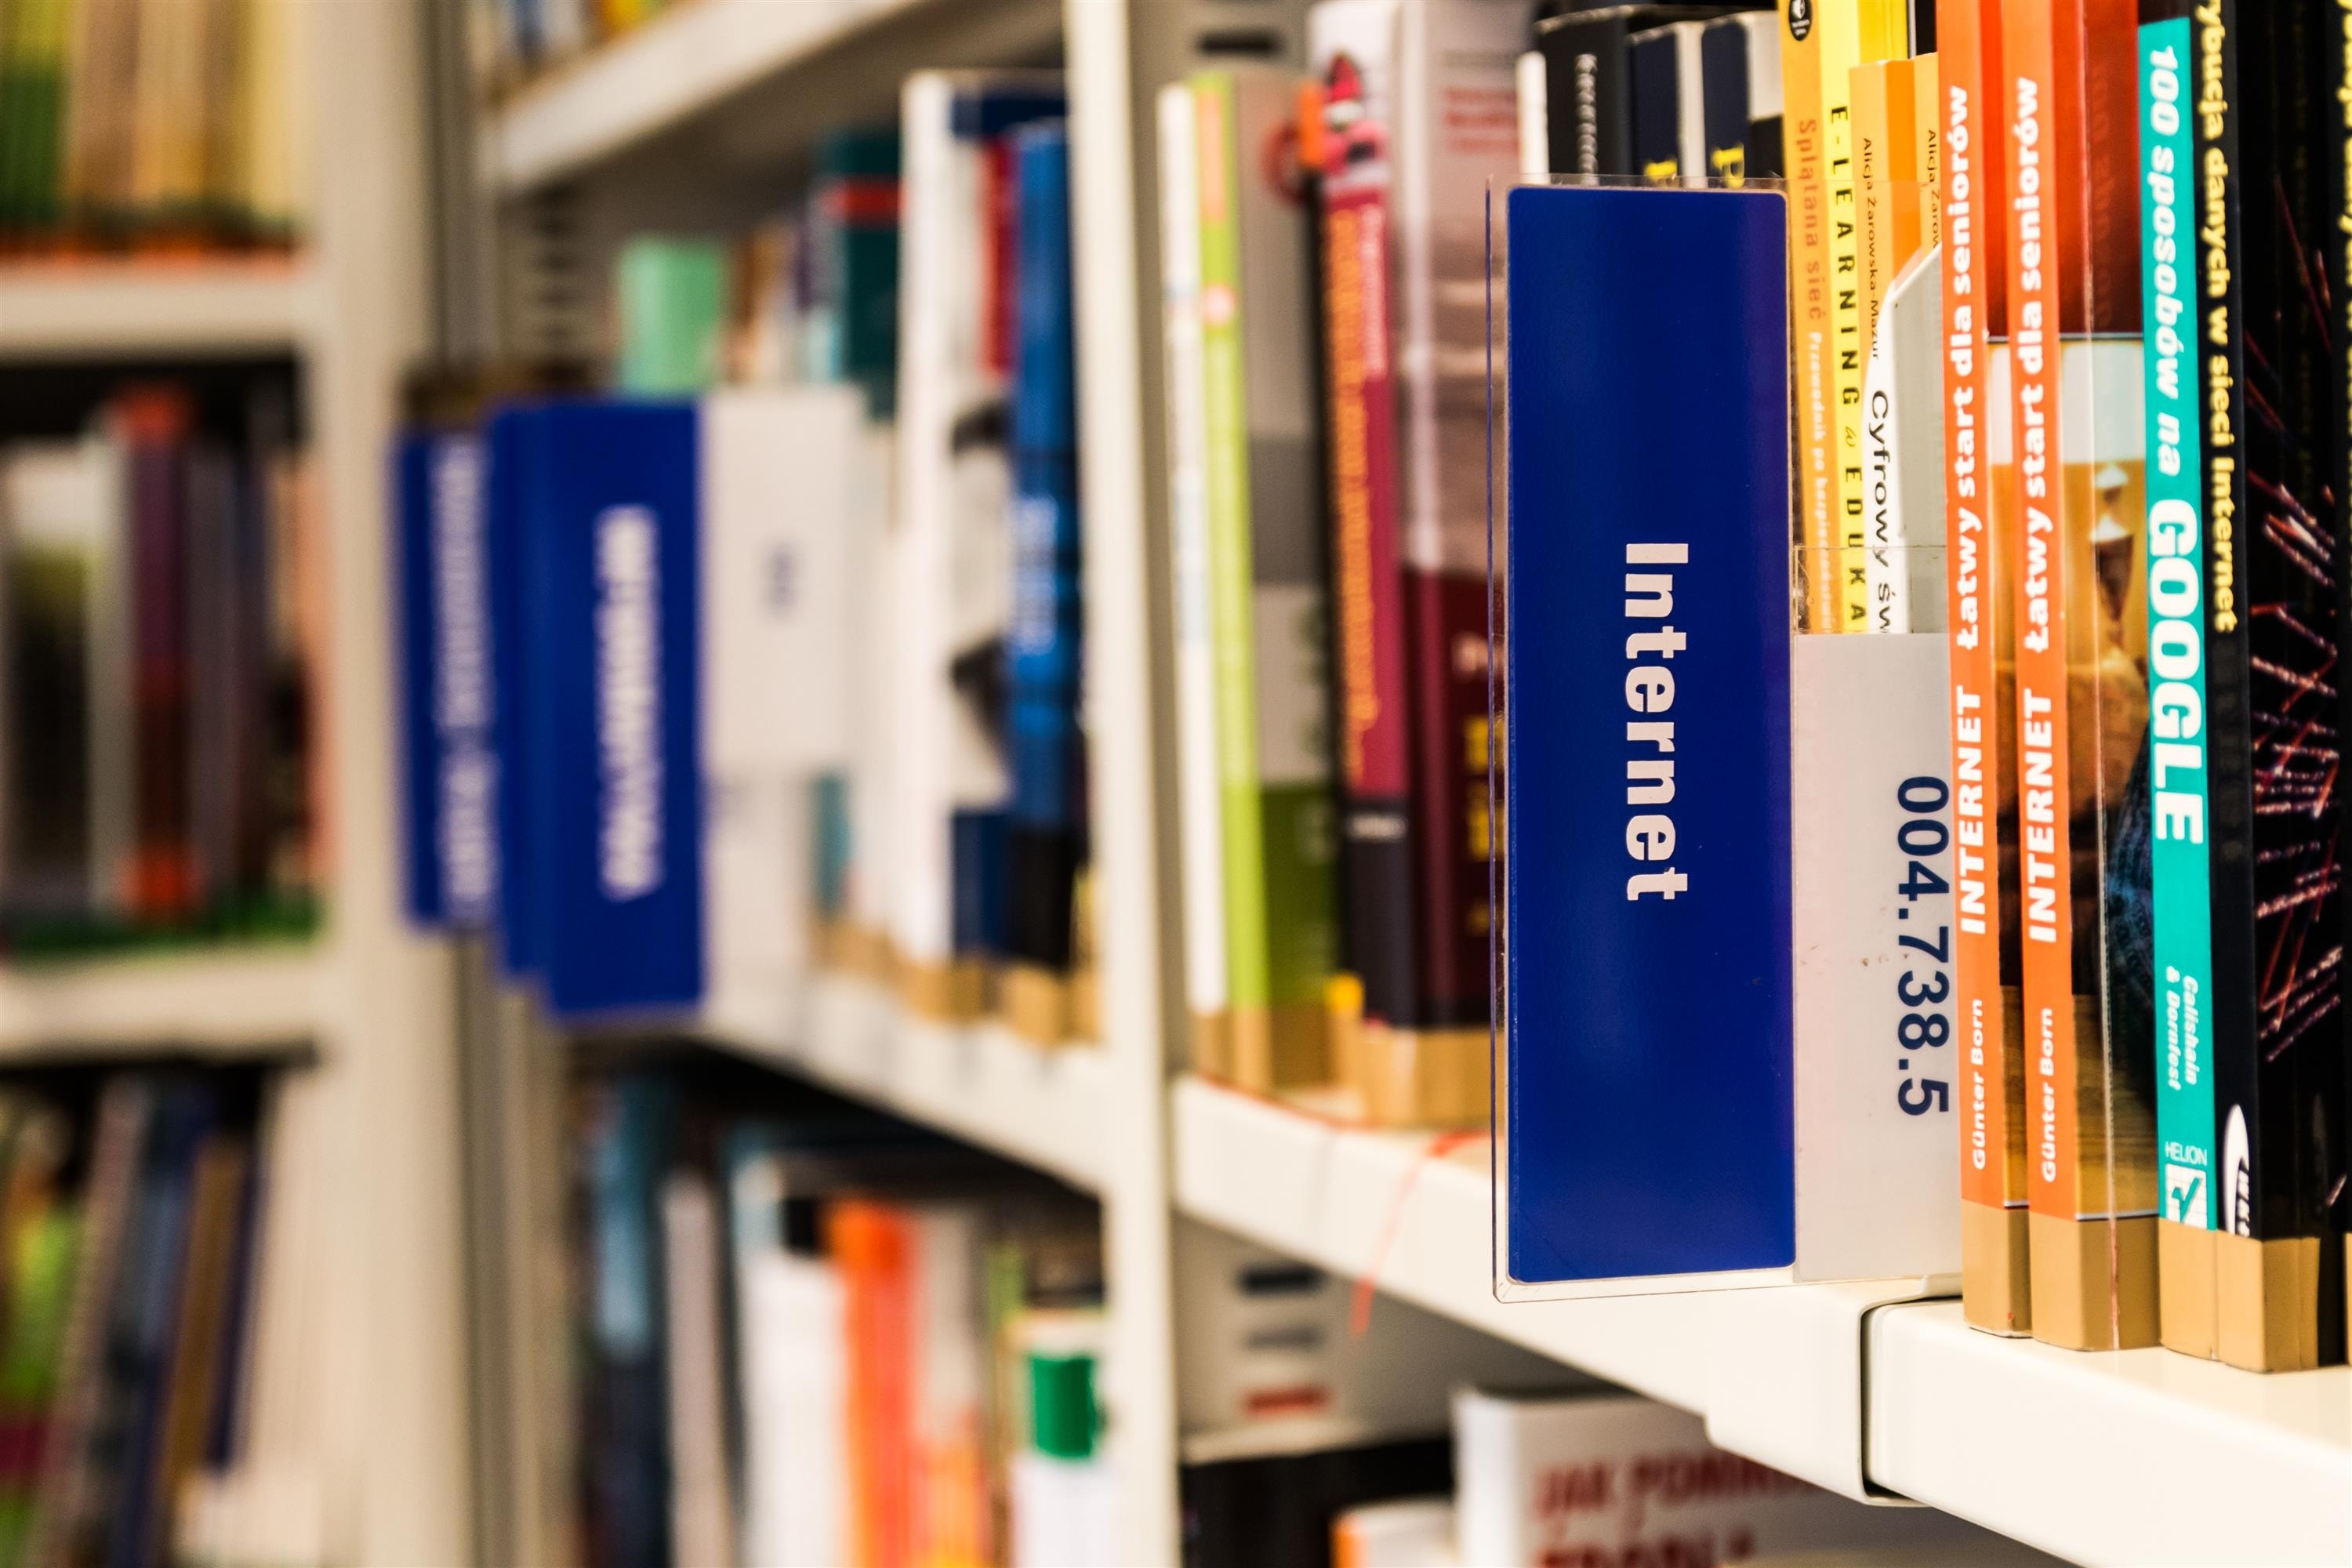 Books on Shelf in Library, Order, University, Travel, Text, HQ Photo